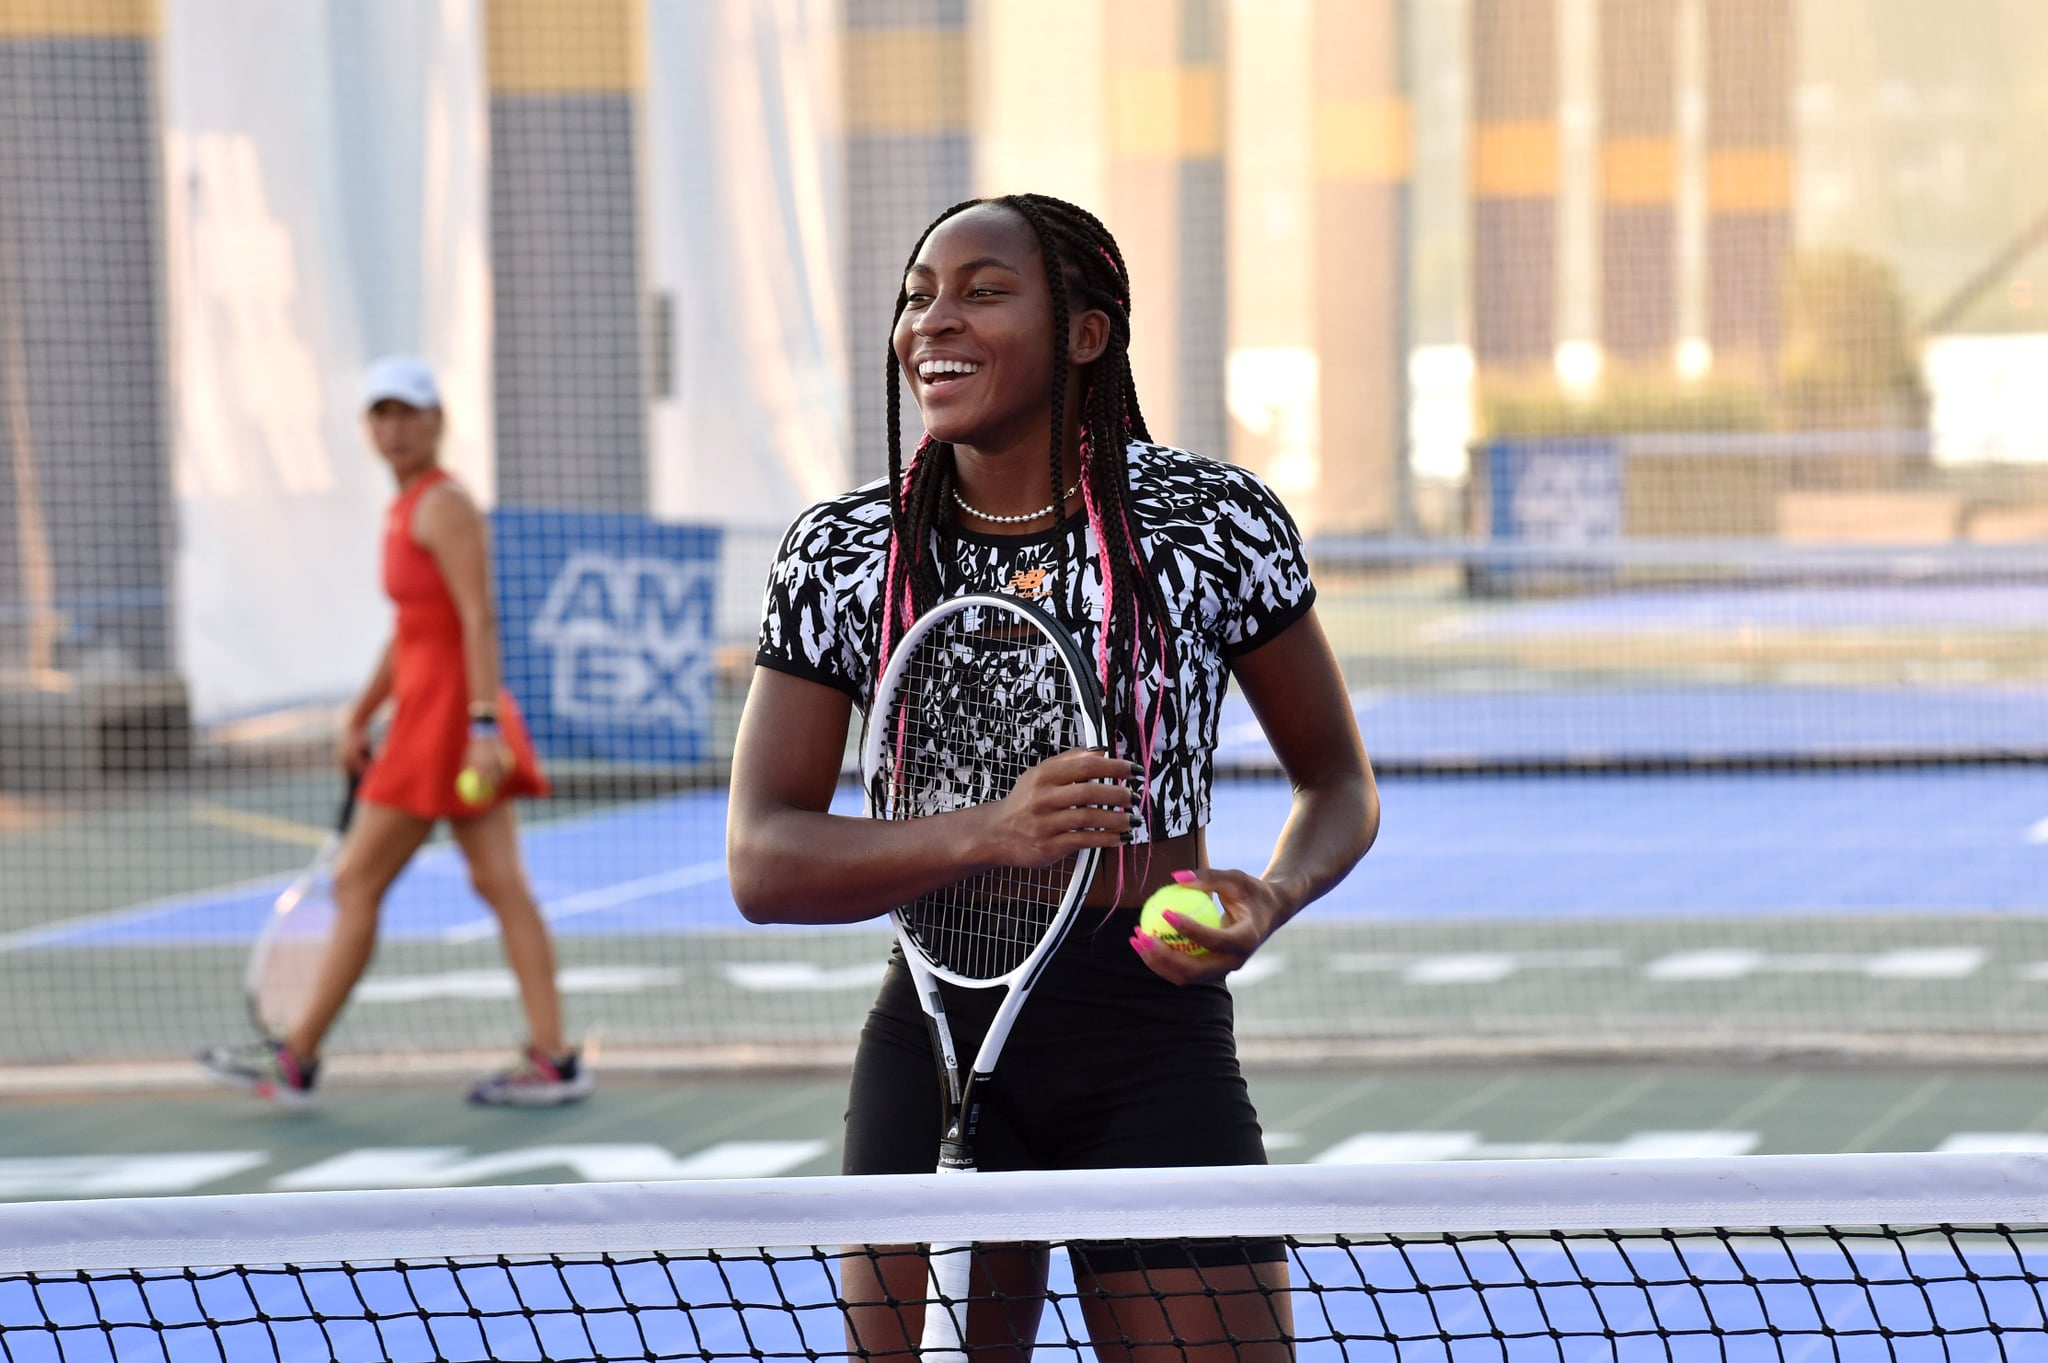 NEW YORK, NEW YORK - AUGUST 24: (EDITORIAL USE ONLY) American tennis player Coco Gauff attends as the American Express Courts are unveiled ahead of 2021 US Open Tennis Tournament at Hudson River Park's Pier 76 on August 24, 2021 in New York City. (Photo by Bryan Bedder/Getty Images for American Express)